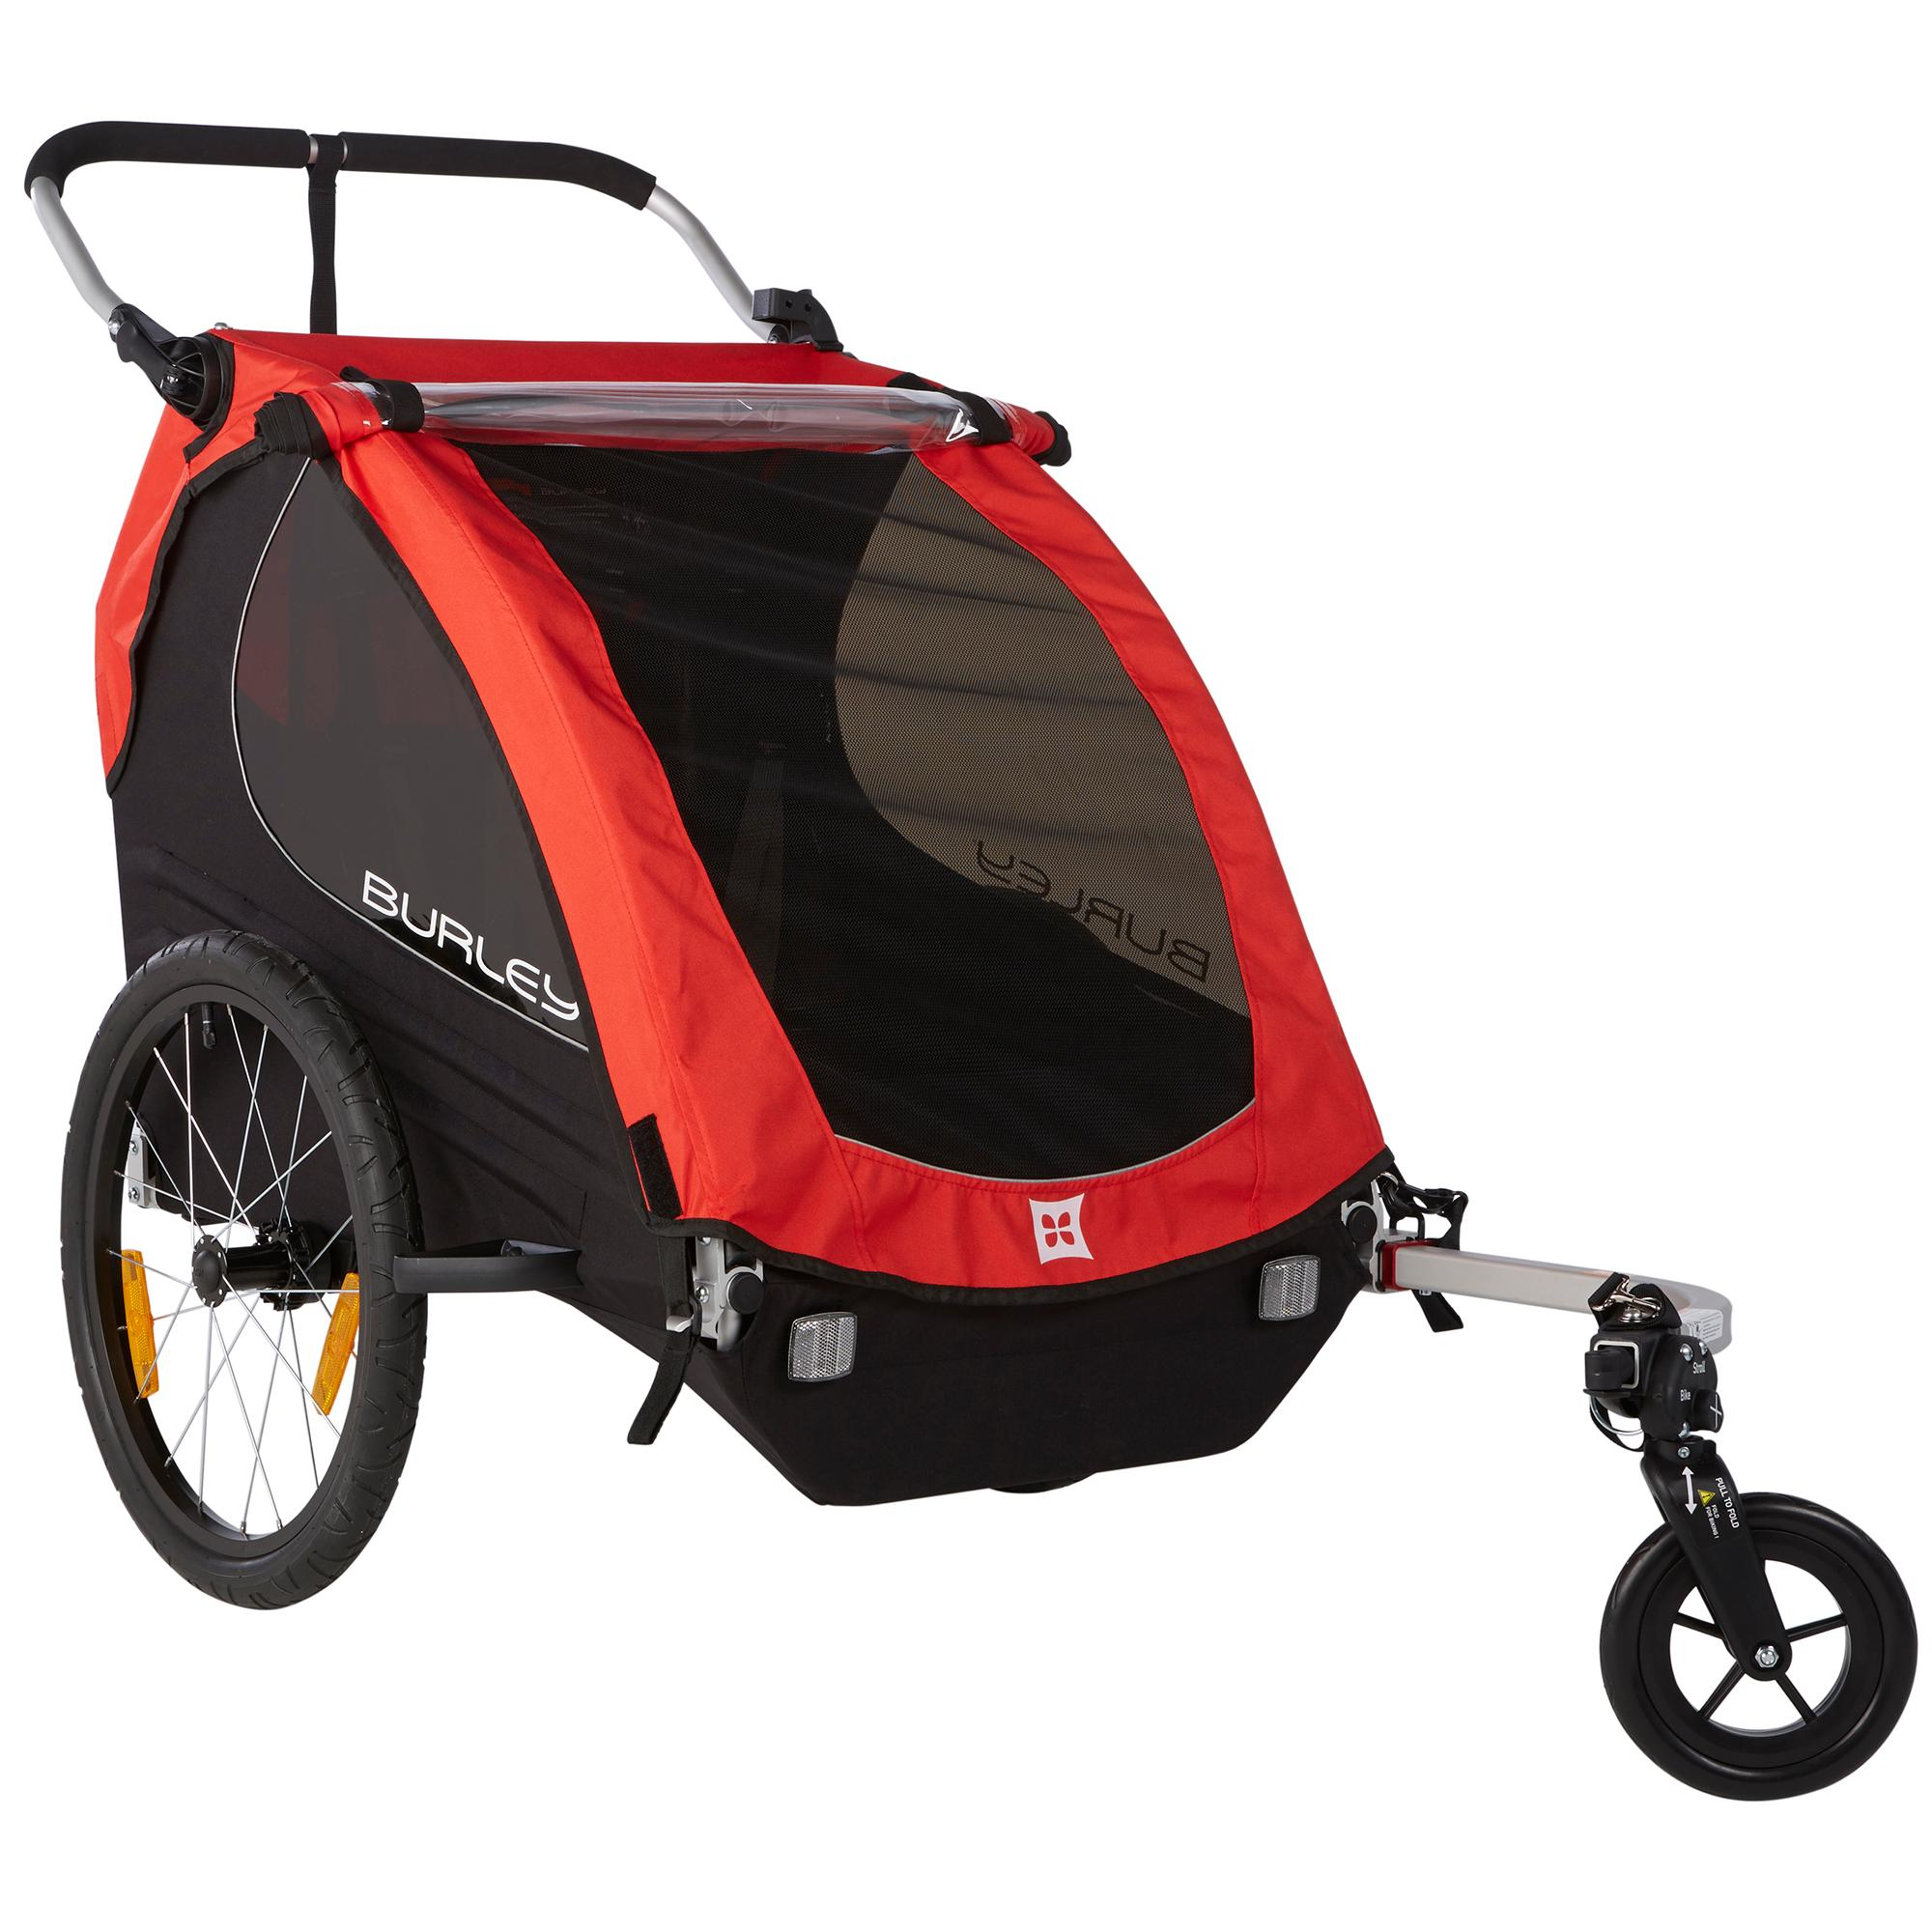 .com : Burley Design Honey Bee Bike Trailer, Red : Sports & Outdoors